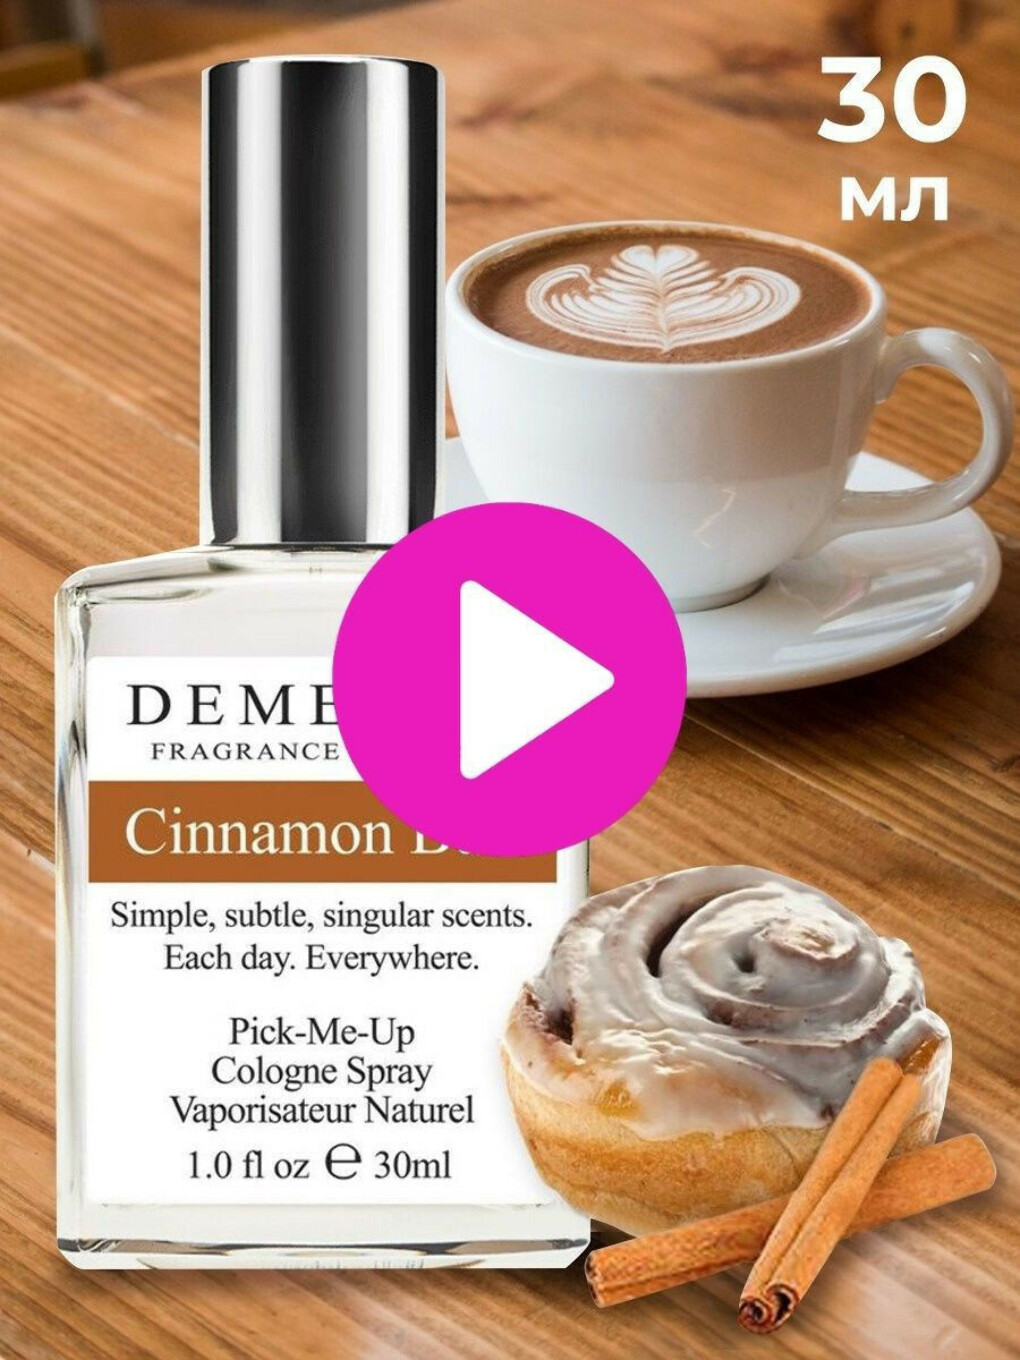 Духи Demeter - Булочка с корицей Cinnamon bun Demeter Fragrance Library 11407863 в интернет-магазине Wildberries